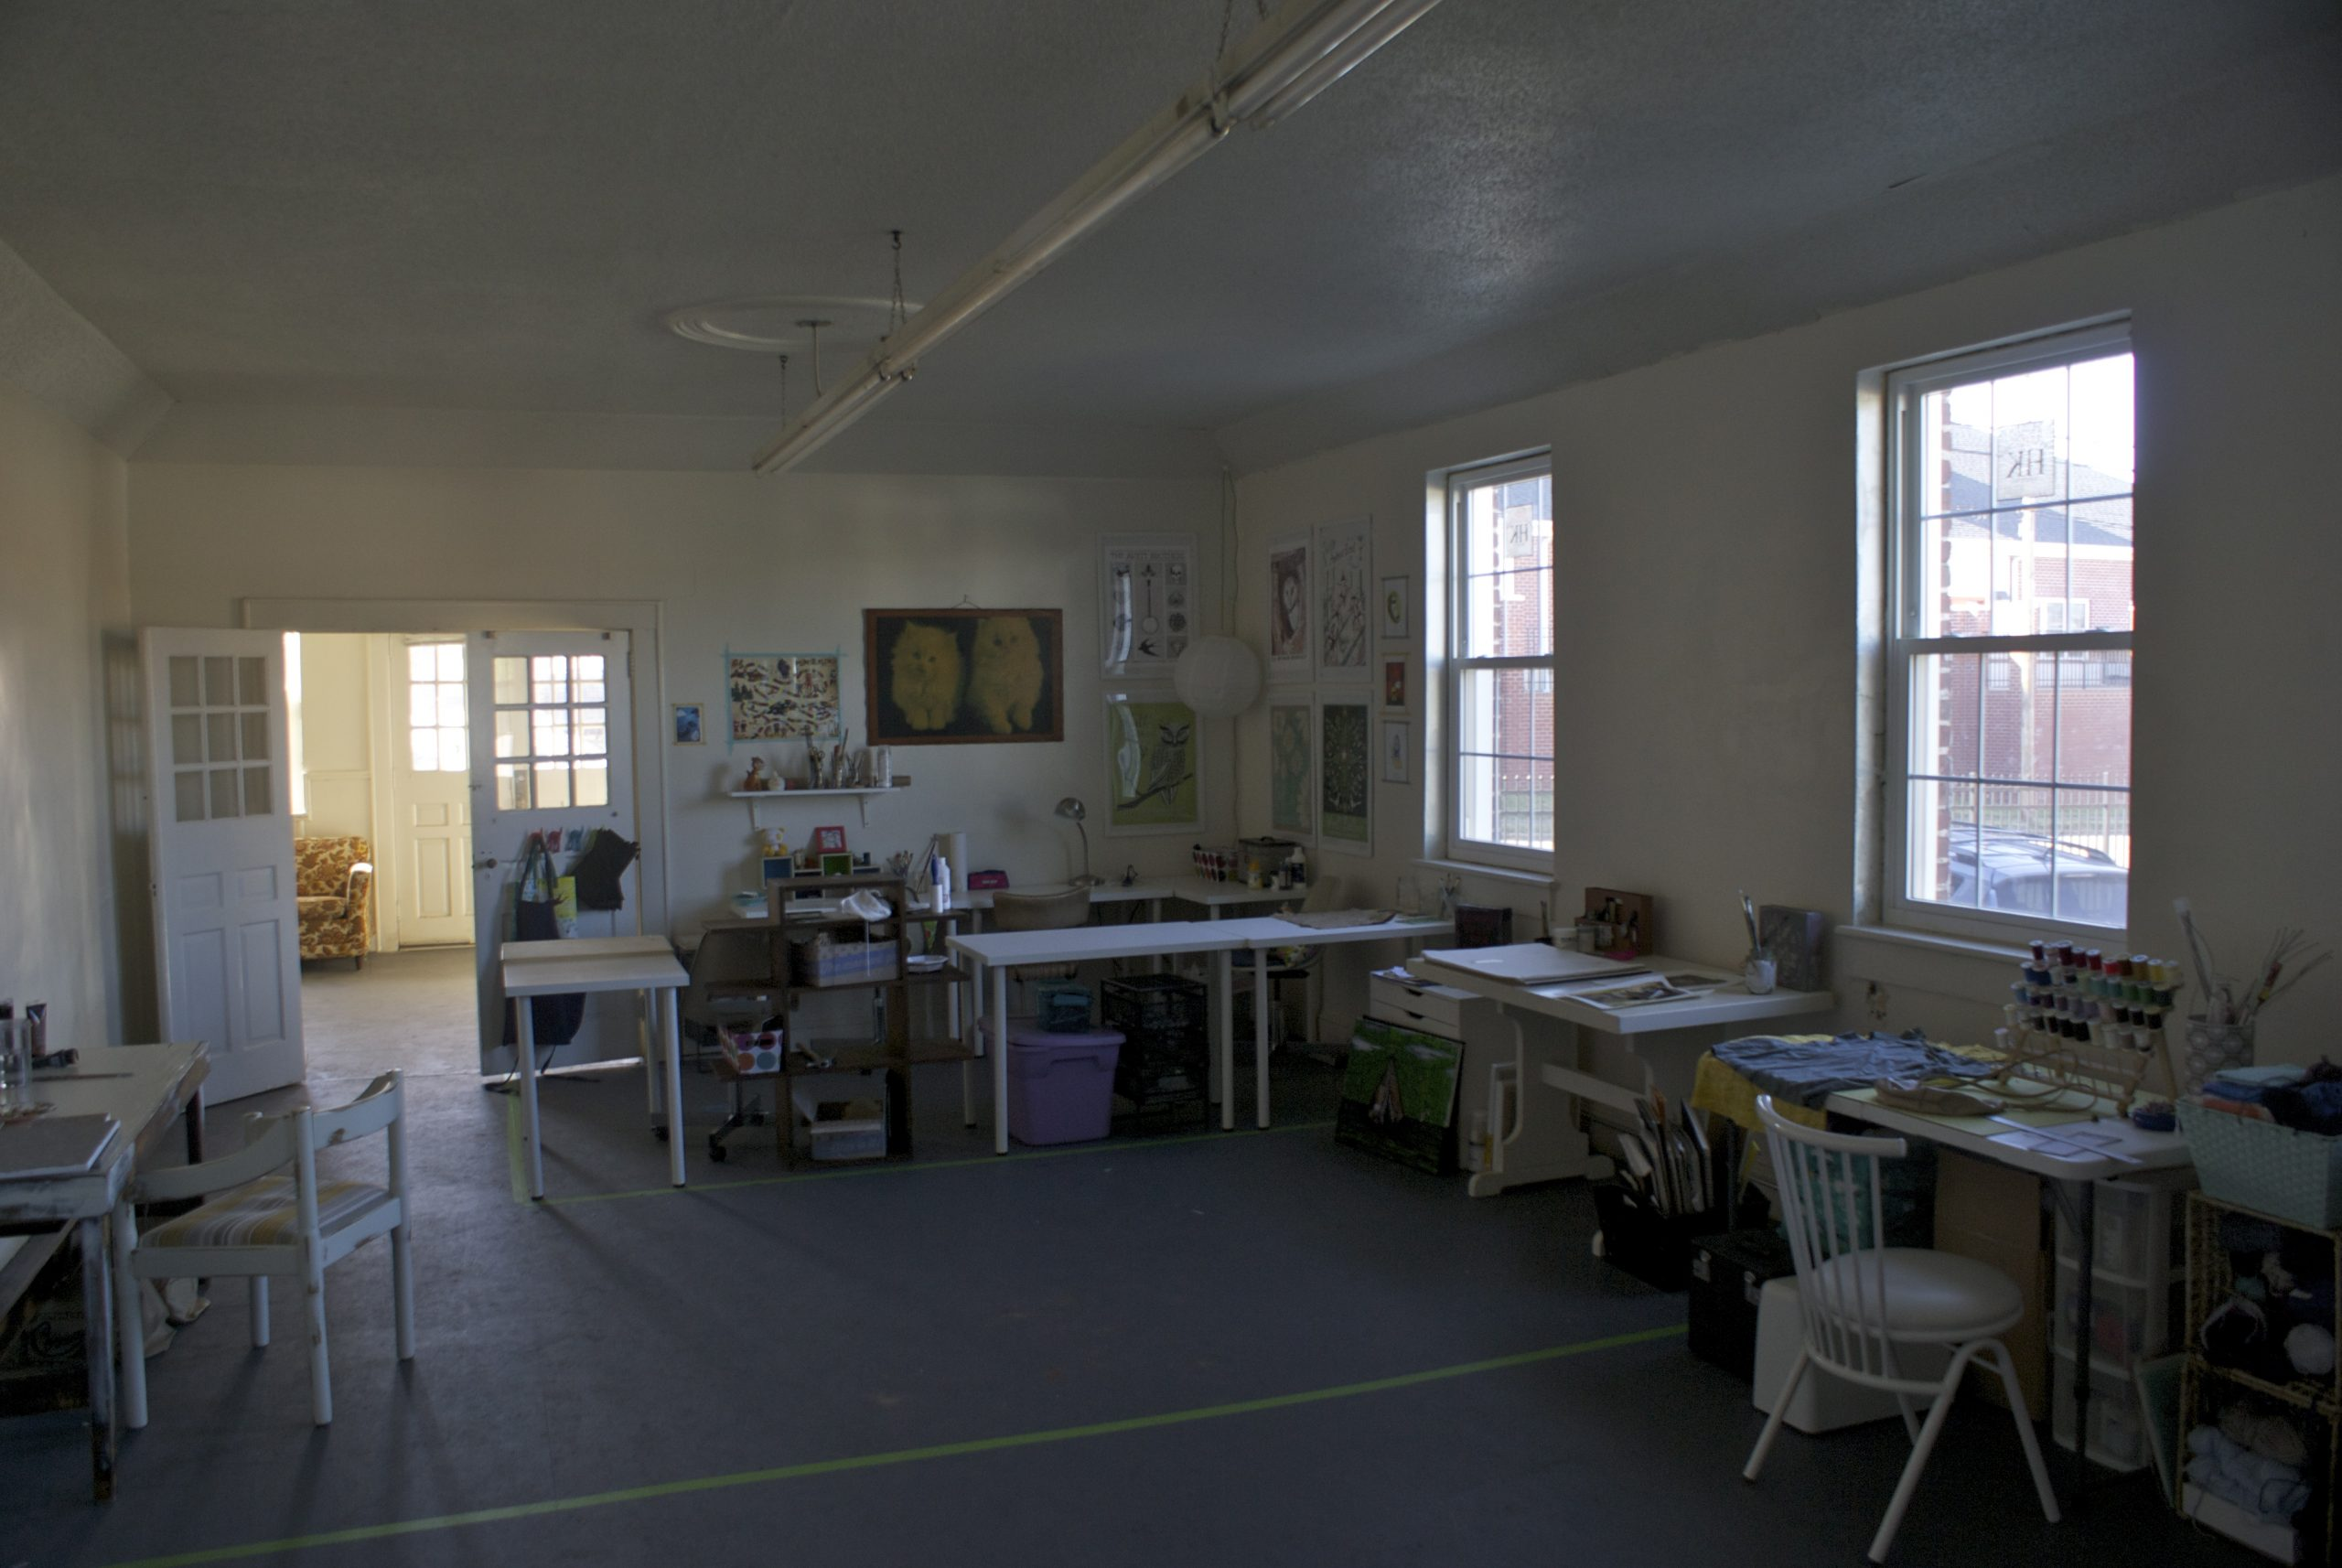 Electric Pyramid artists and an embalming room The NC Triads